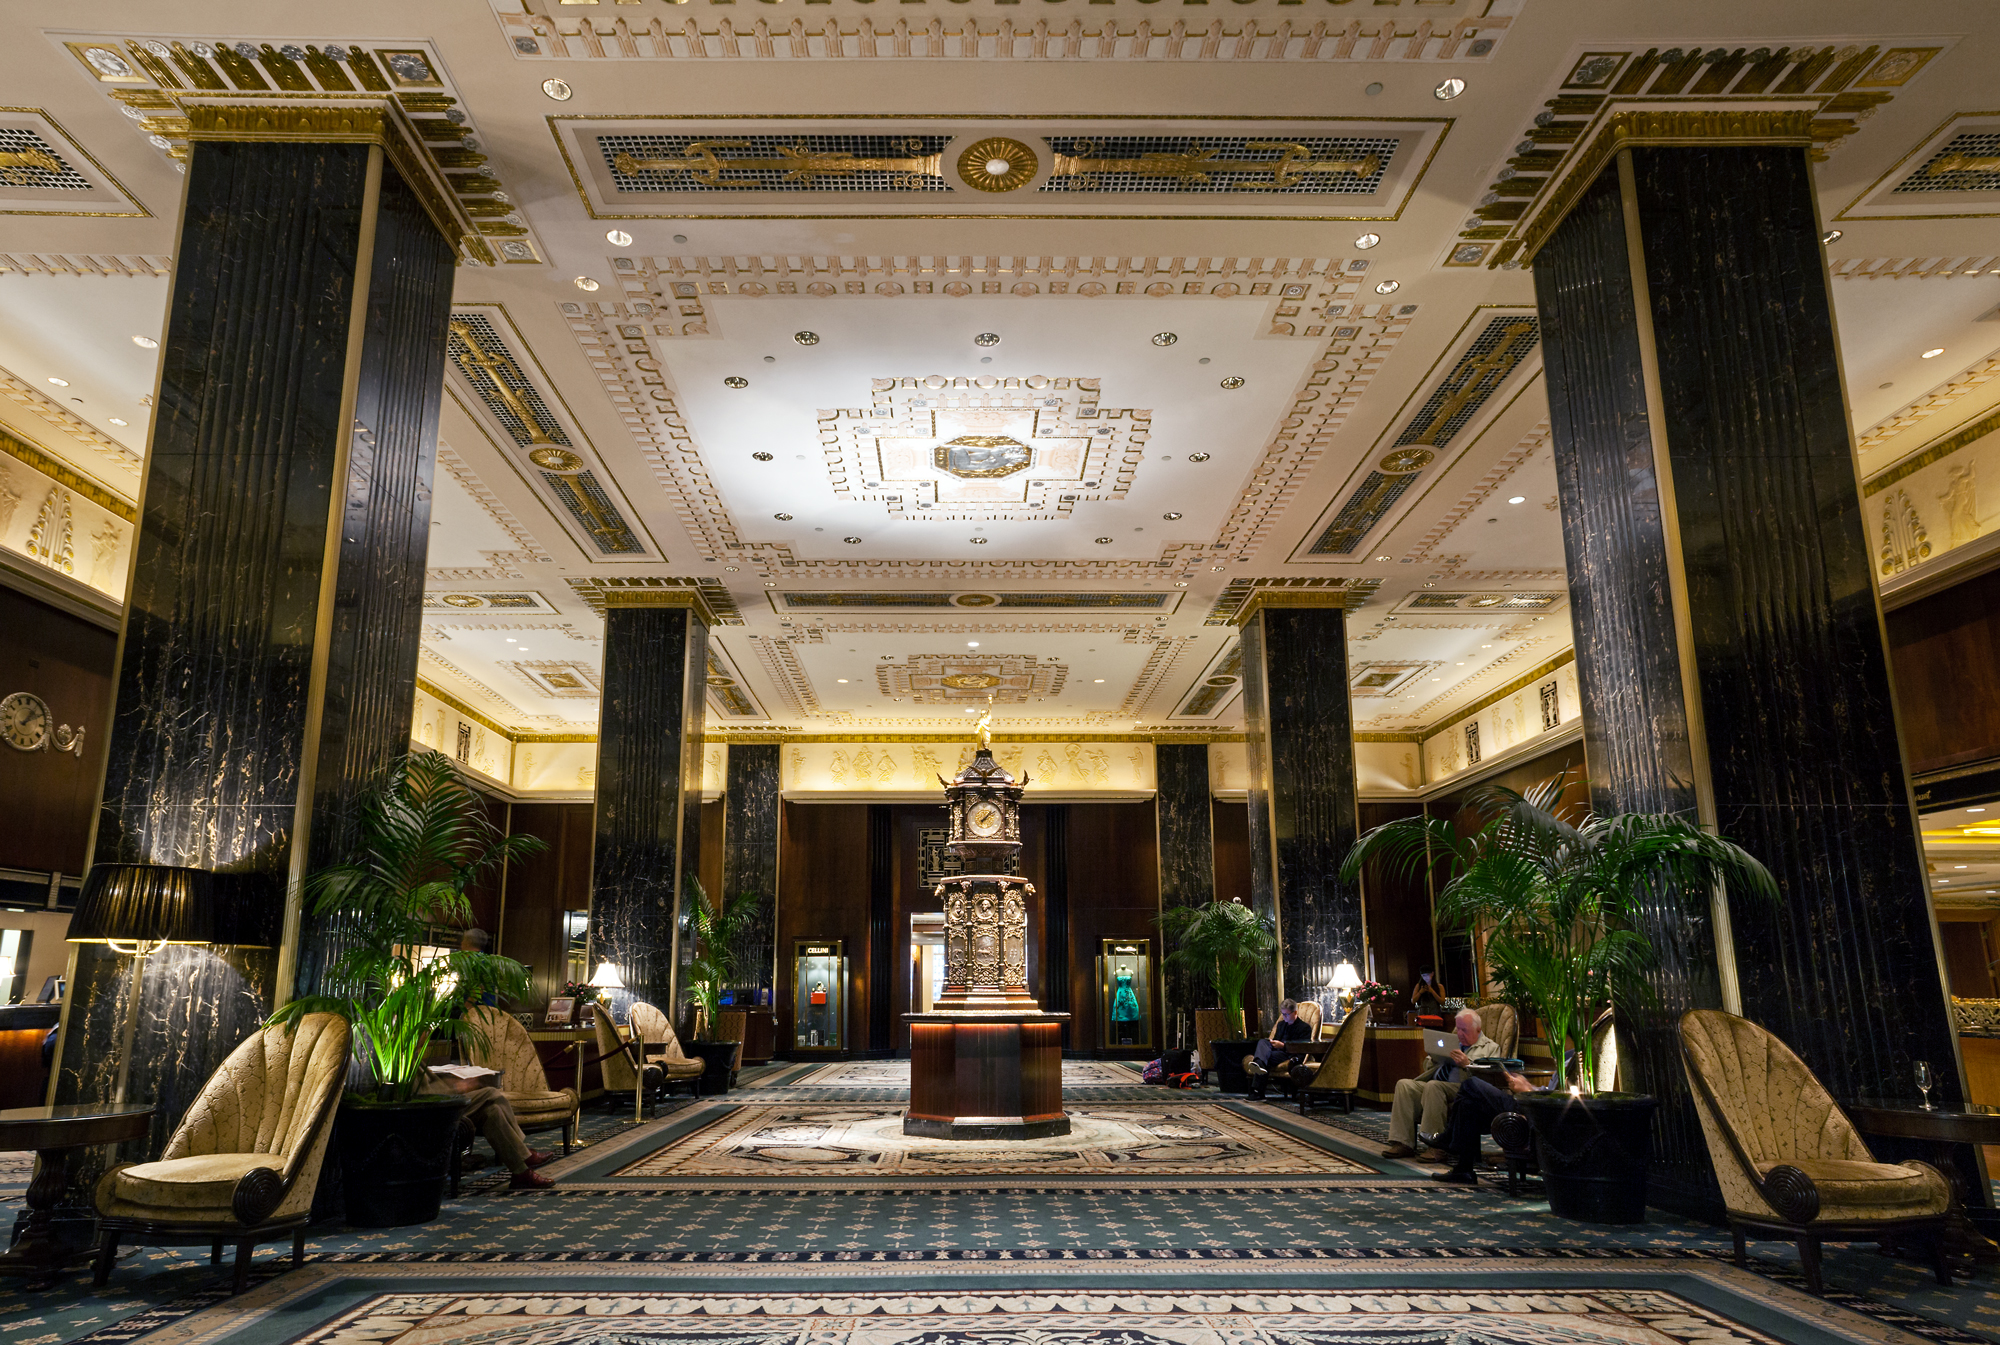 Renovation Decoration Photos Capture The Historic Glamour Of The Waldorf Astoria Before